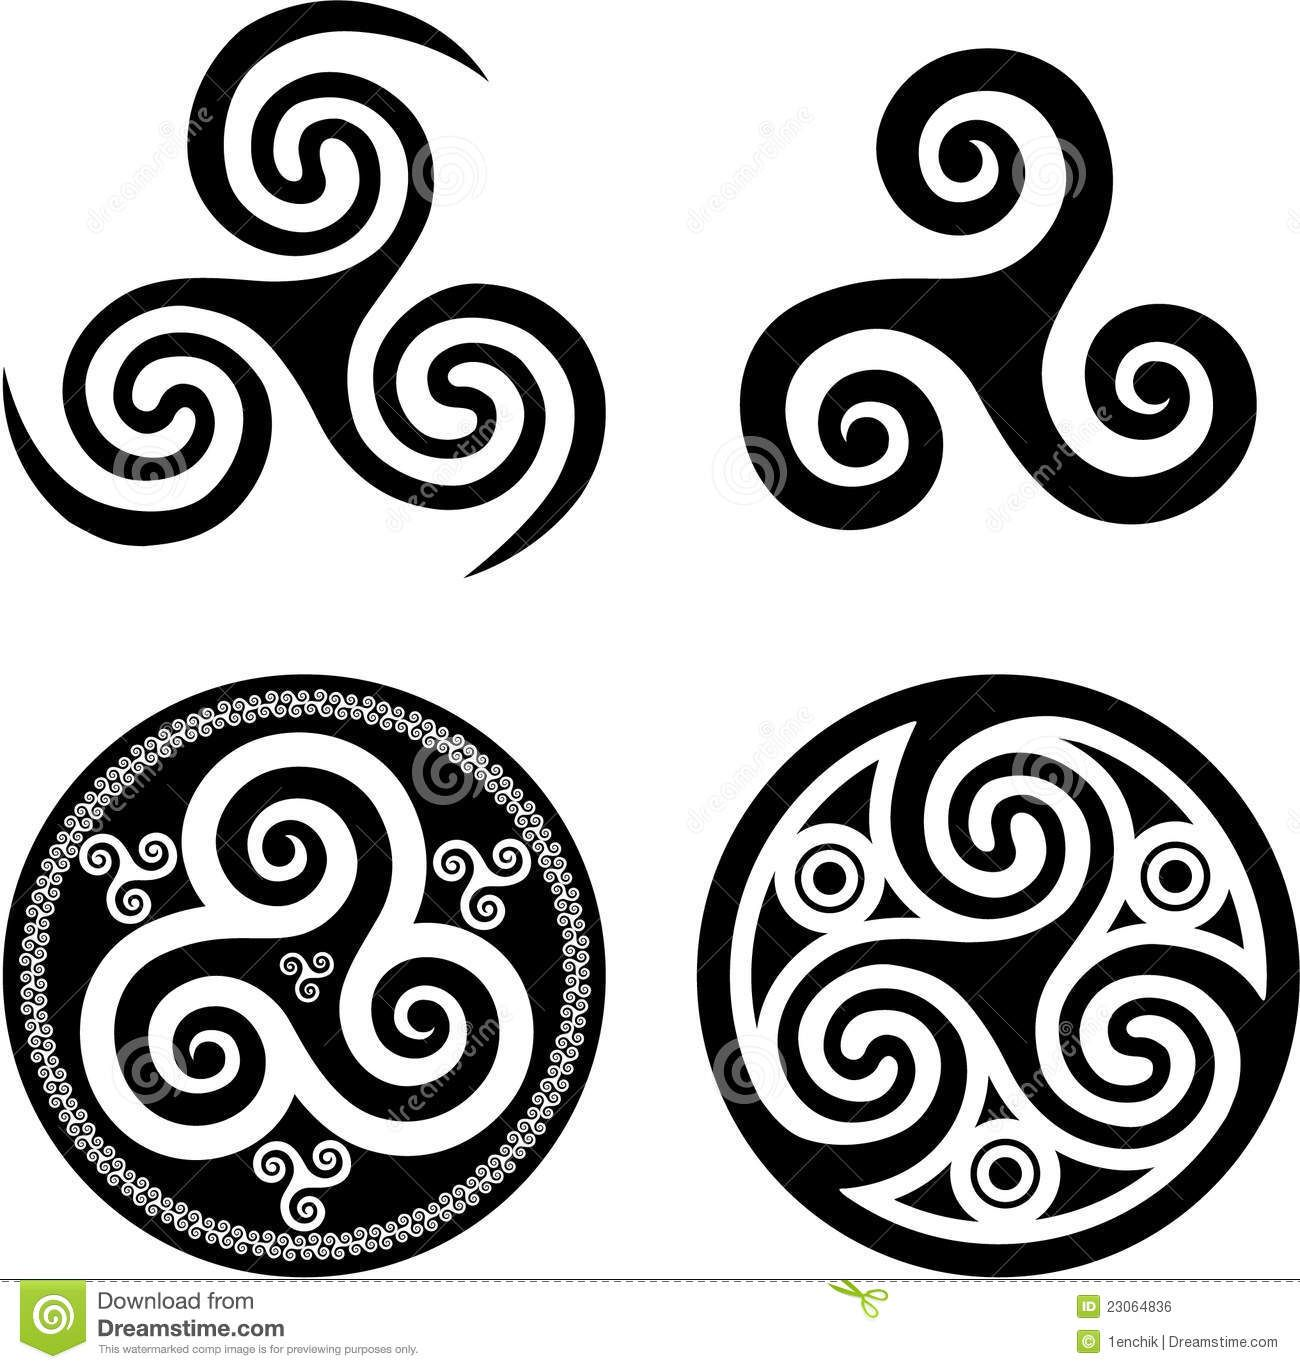 Pin By Bluireland On Geometric Tattoo Ideas In 2020 With Images